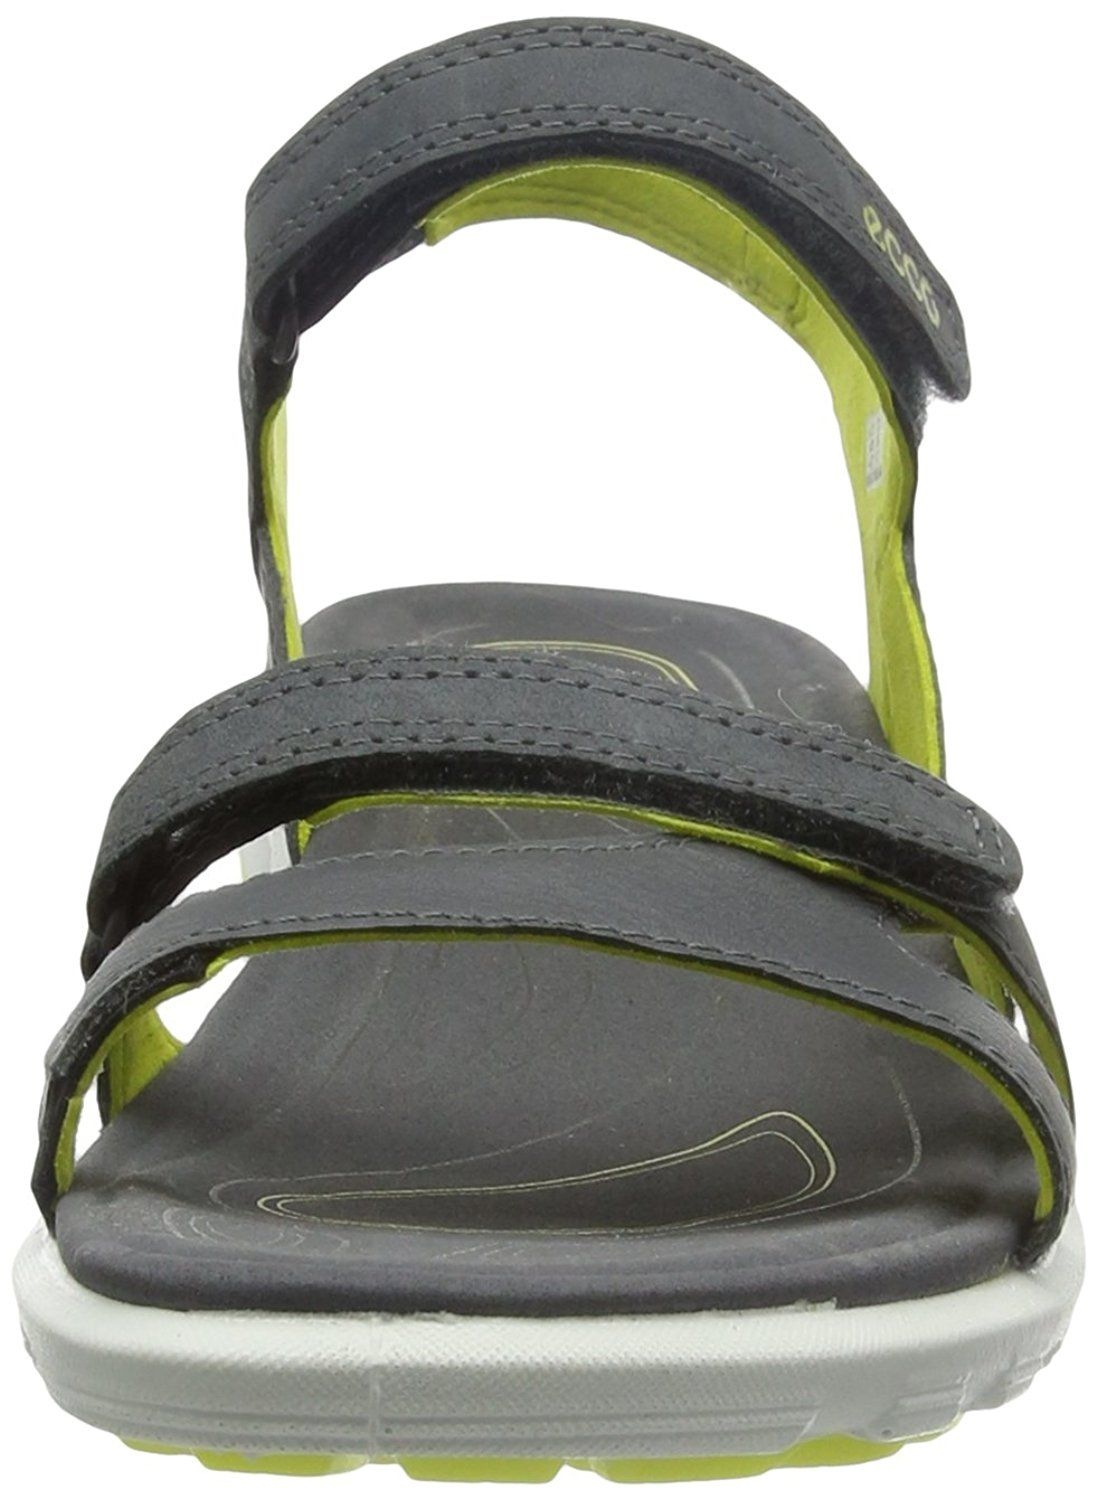 a39578eec7ff ECCO Women s Cruise Fitness Sandals     For more information